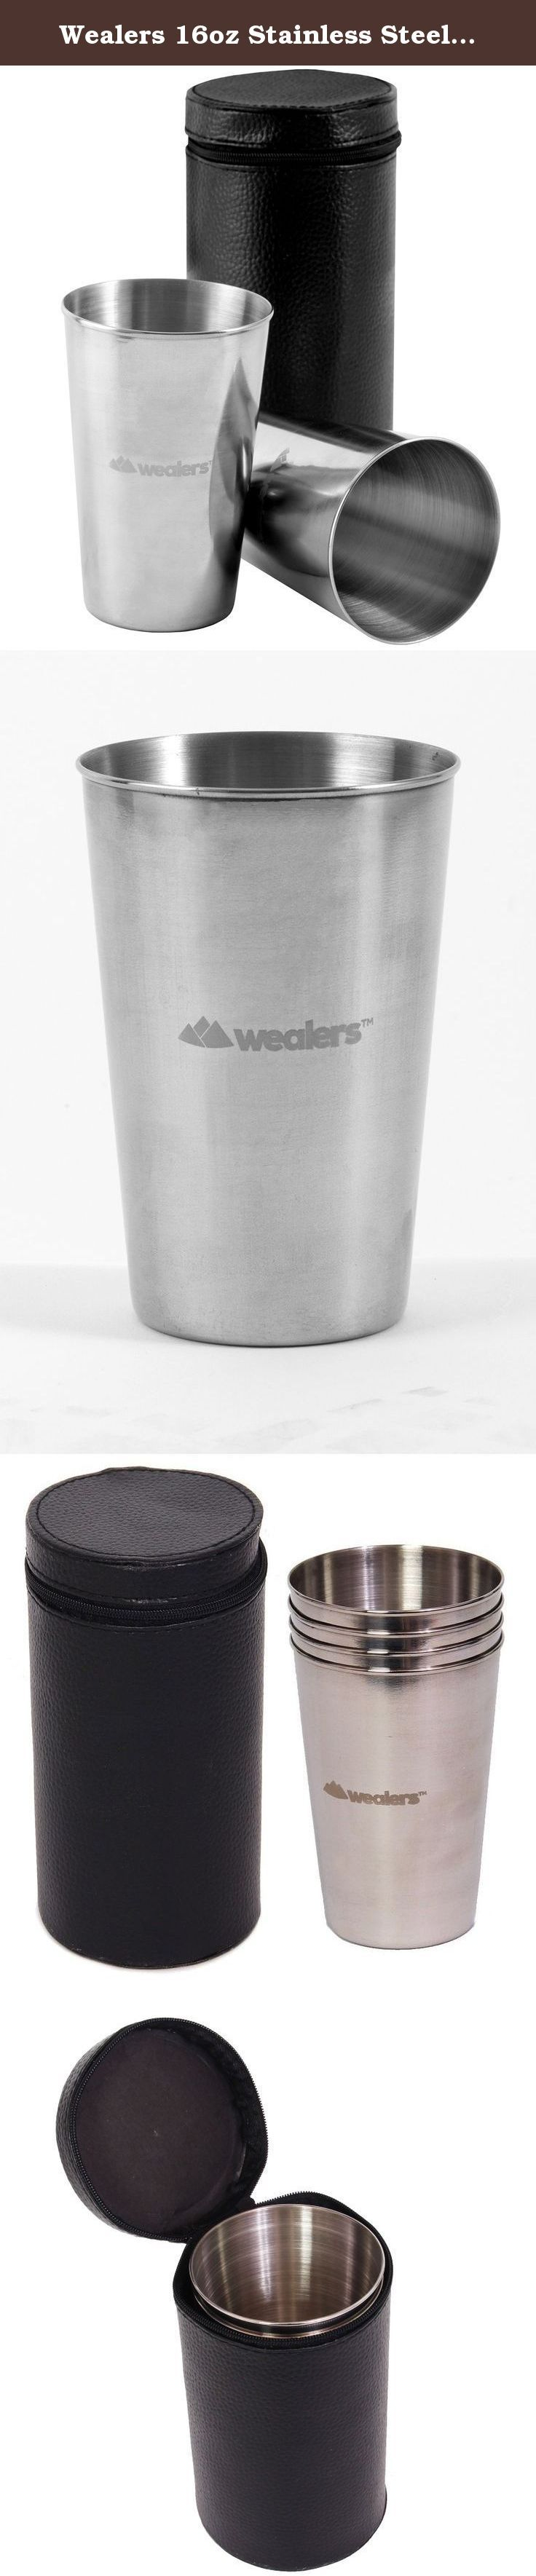 Wealers 16oz Stainless Steel Pint Cups, {5 Pack} BPA & Toxin Free, Great for Outdoors, Camping, Backpacking, and Travel, Carry Case Included. Perfect for a drink of water, juice, iced coffee, beer, smoothies, milk or any other beverage, Wealers 16 oz Stainless Steel pint cups are the favored multi-use cup for any occasion. Forget those wasteful red plastic cups. Grab your stainless steel cups the next time you head out for a picnic, concert, BBQ, beach trip or just have friend over for...